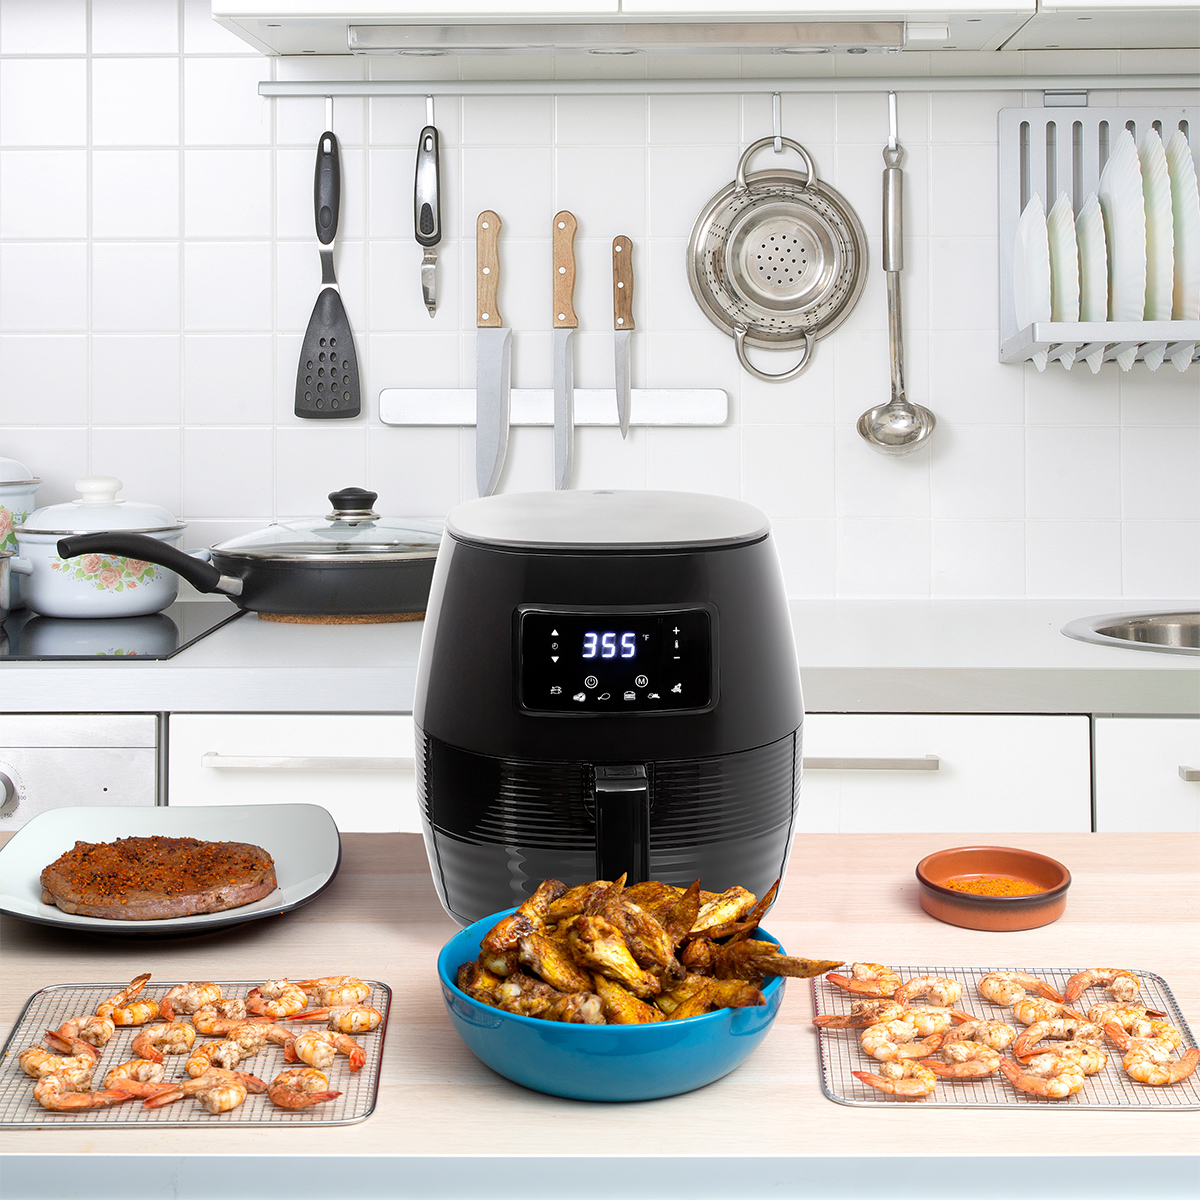 Deco-Chef-5-8QT-1400W-Digital-Electric-No-Oil-Air-Fryer-6-Cooking-Presets-Timer thumbnail 7